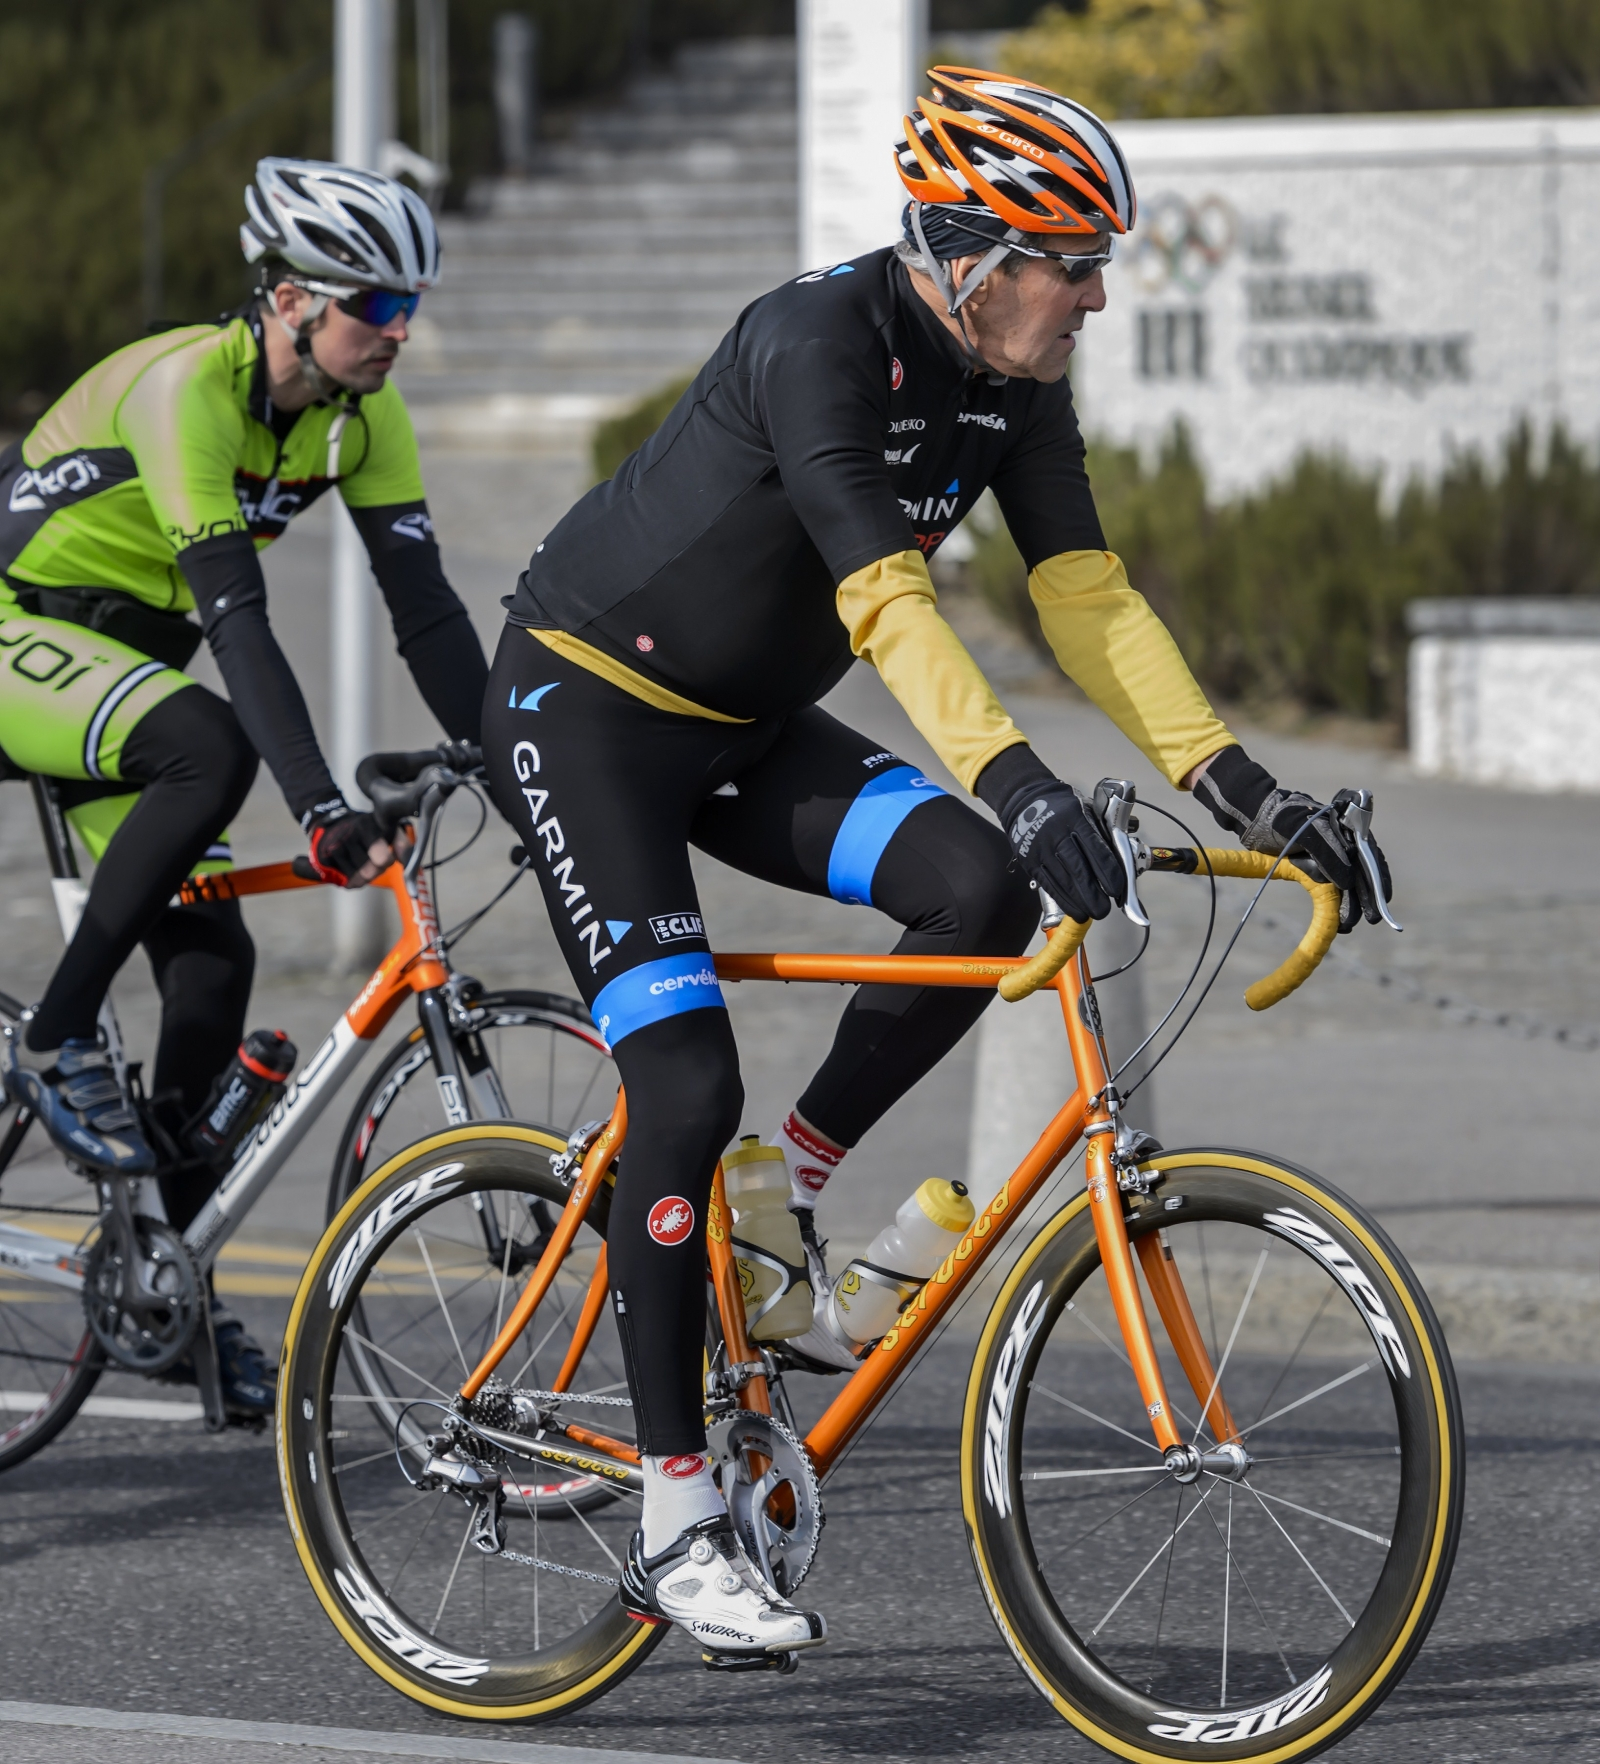 John Kerry cycling